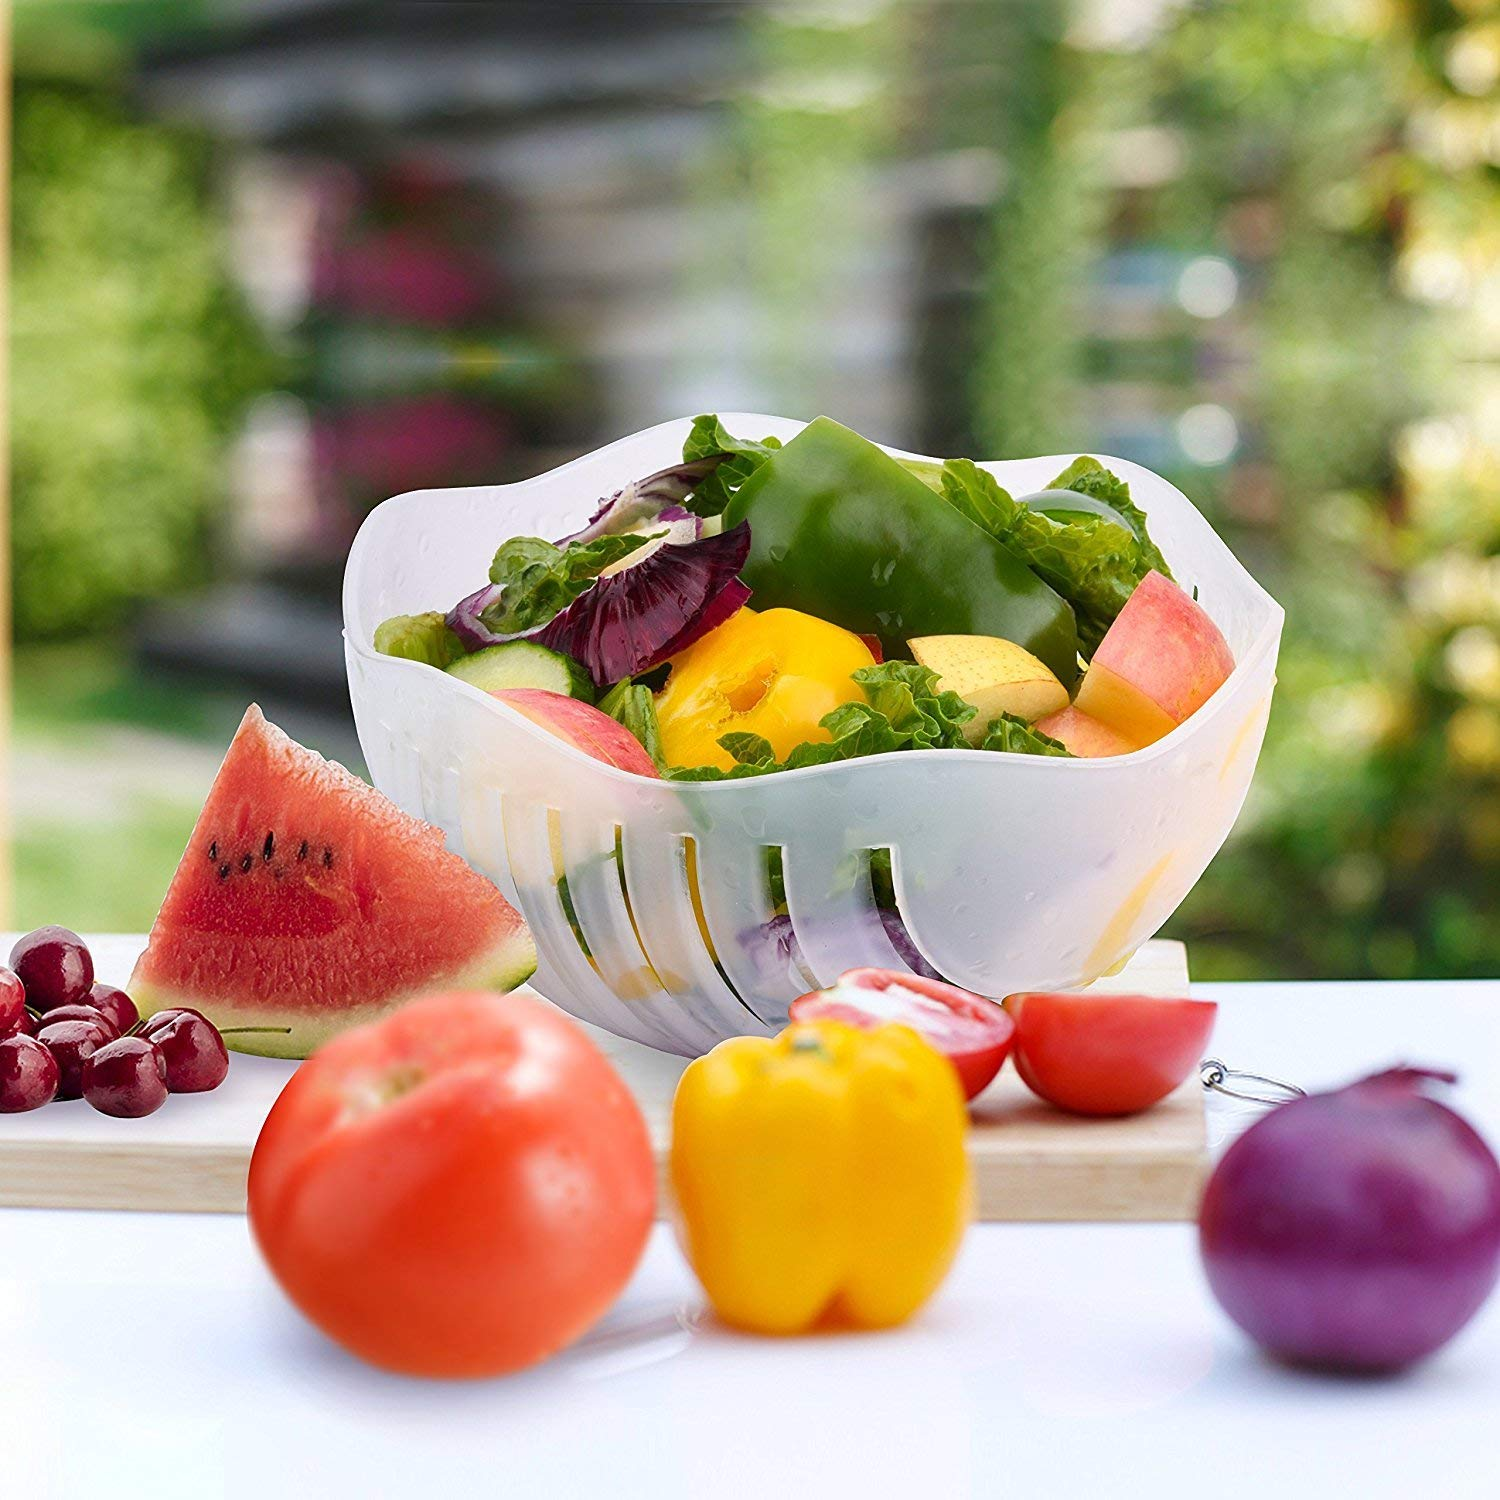 Salad Cutter Bowl 60 Seconds Easy Fresh Salad Cutter and Fast Fruit Vegetable Chopper Salad Maker by Accdata [Bonus Multi-Function Paring Knife] by Accdata (Image #6)